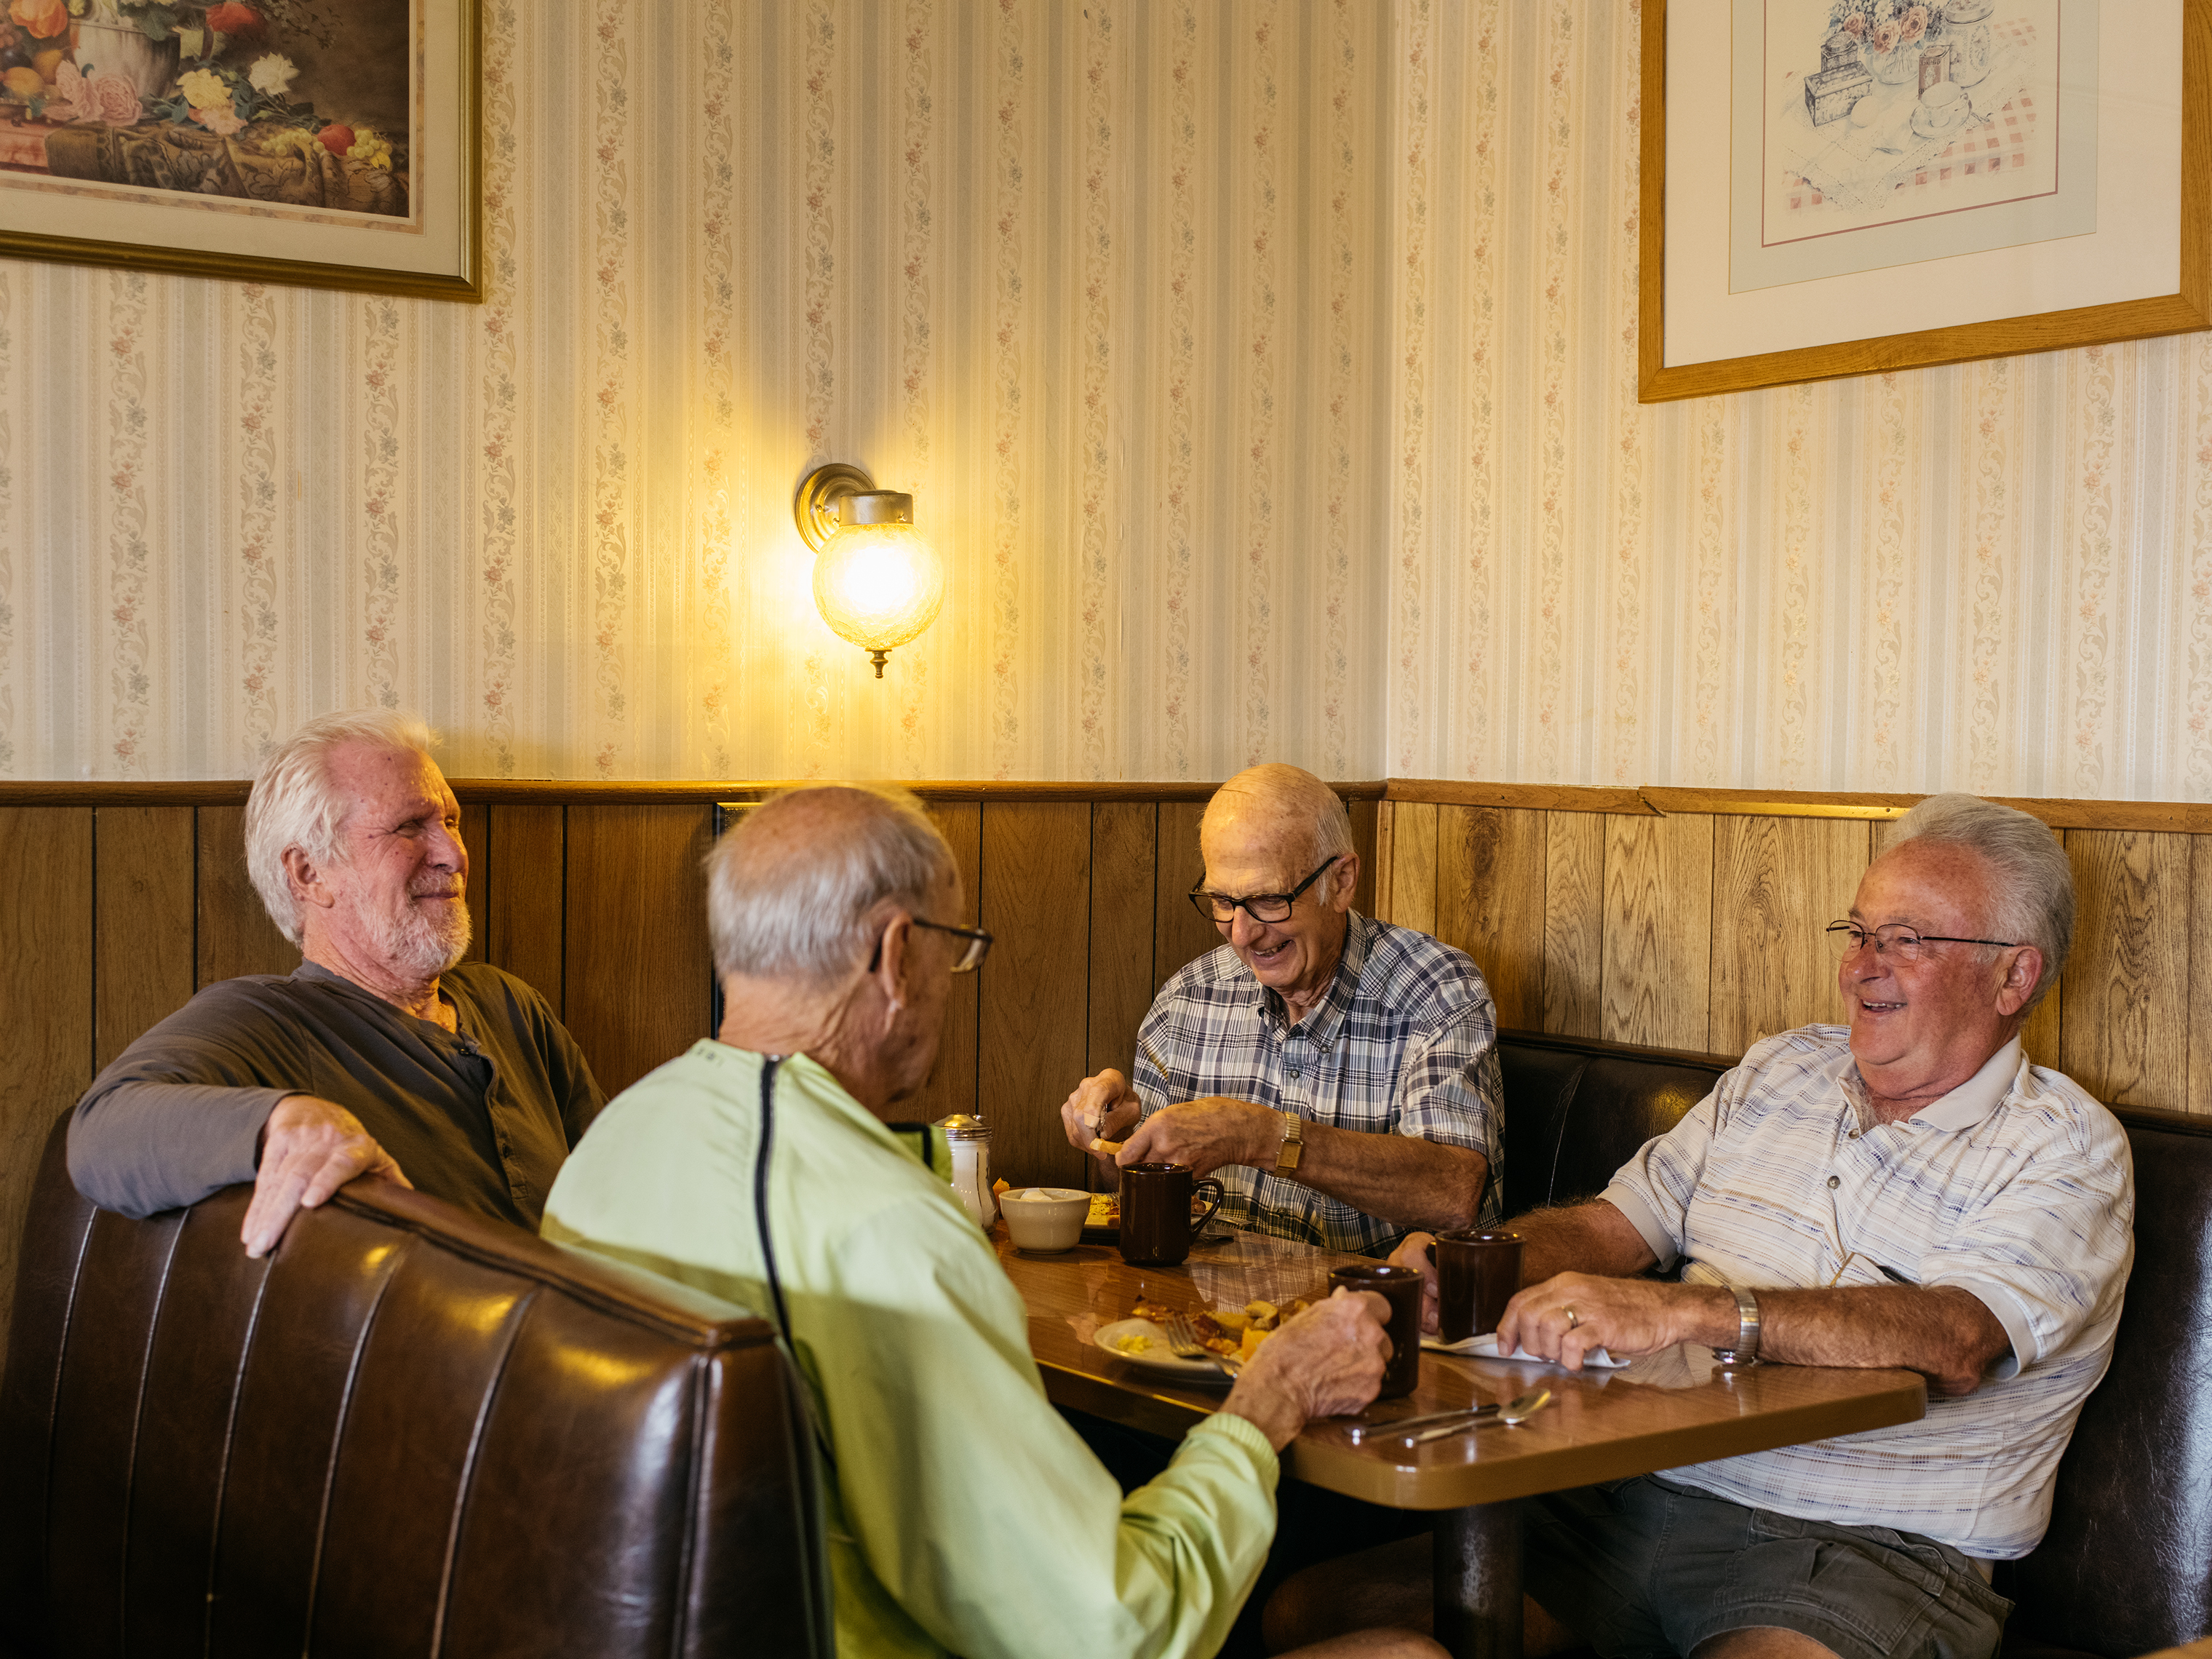 Wilbur Repp (third from left) having coffee with his daily breakfast group, Richard Ellsworth, Jack LeWarn and Ron Roberts, at Mary's Fine Foods in Kent, WA.